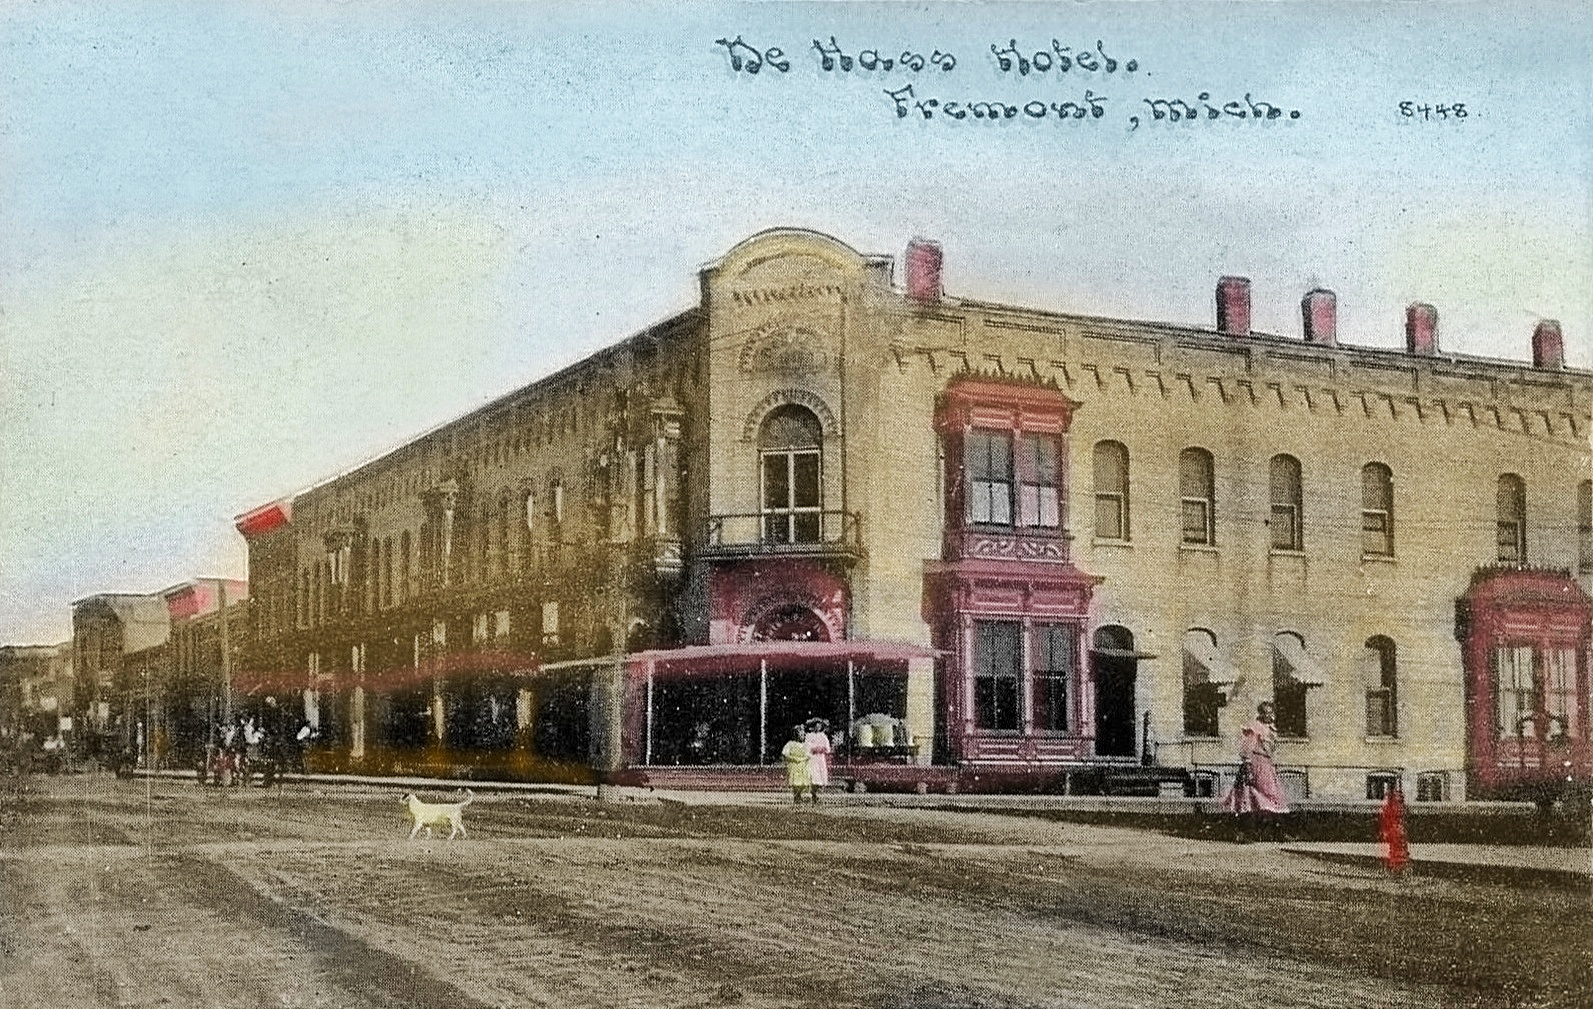 FREMONT Michigan De Hass Hotel 1910 Newaygo County